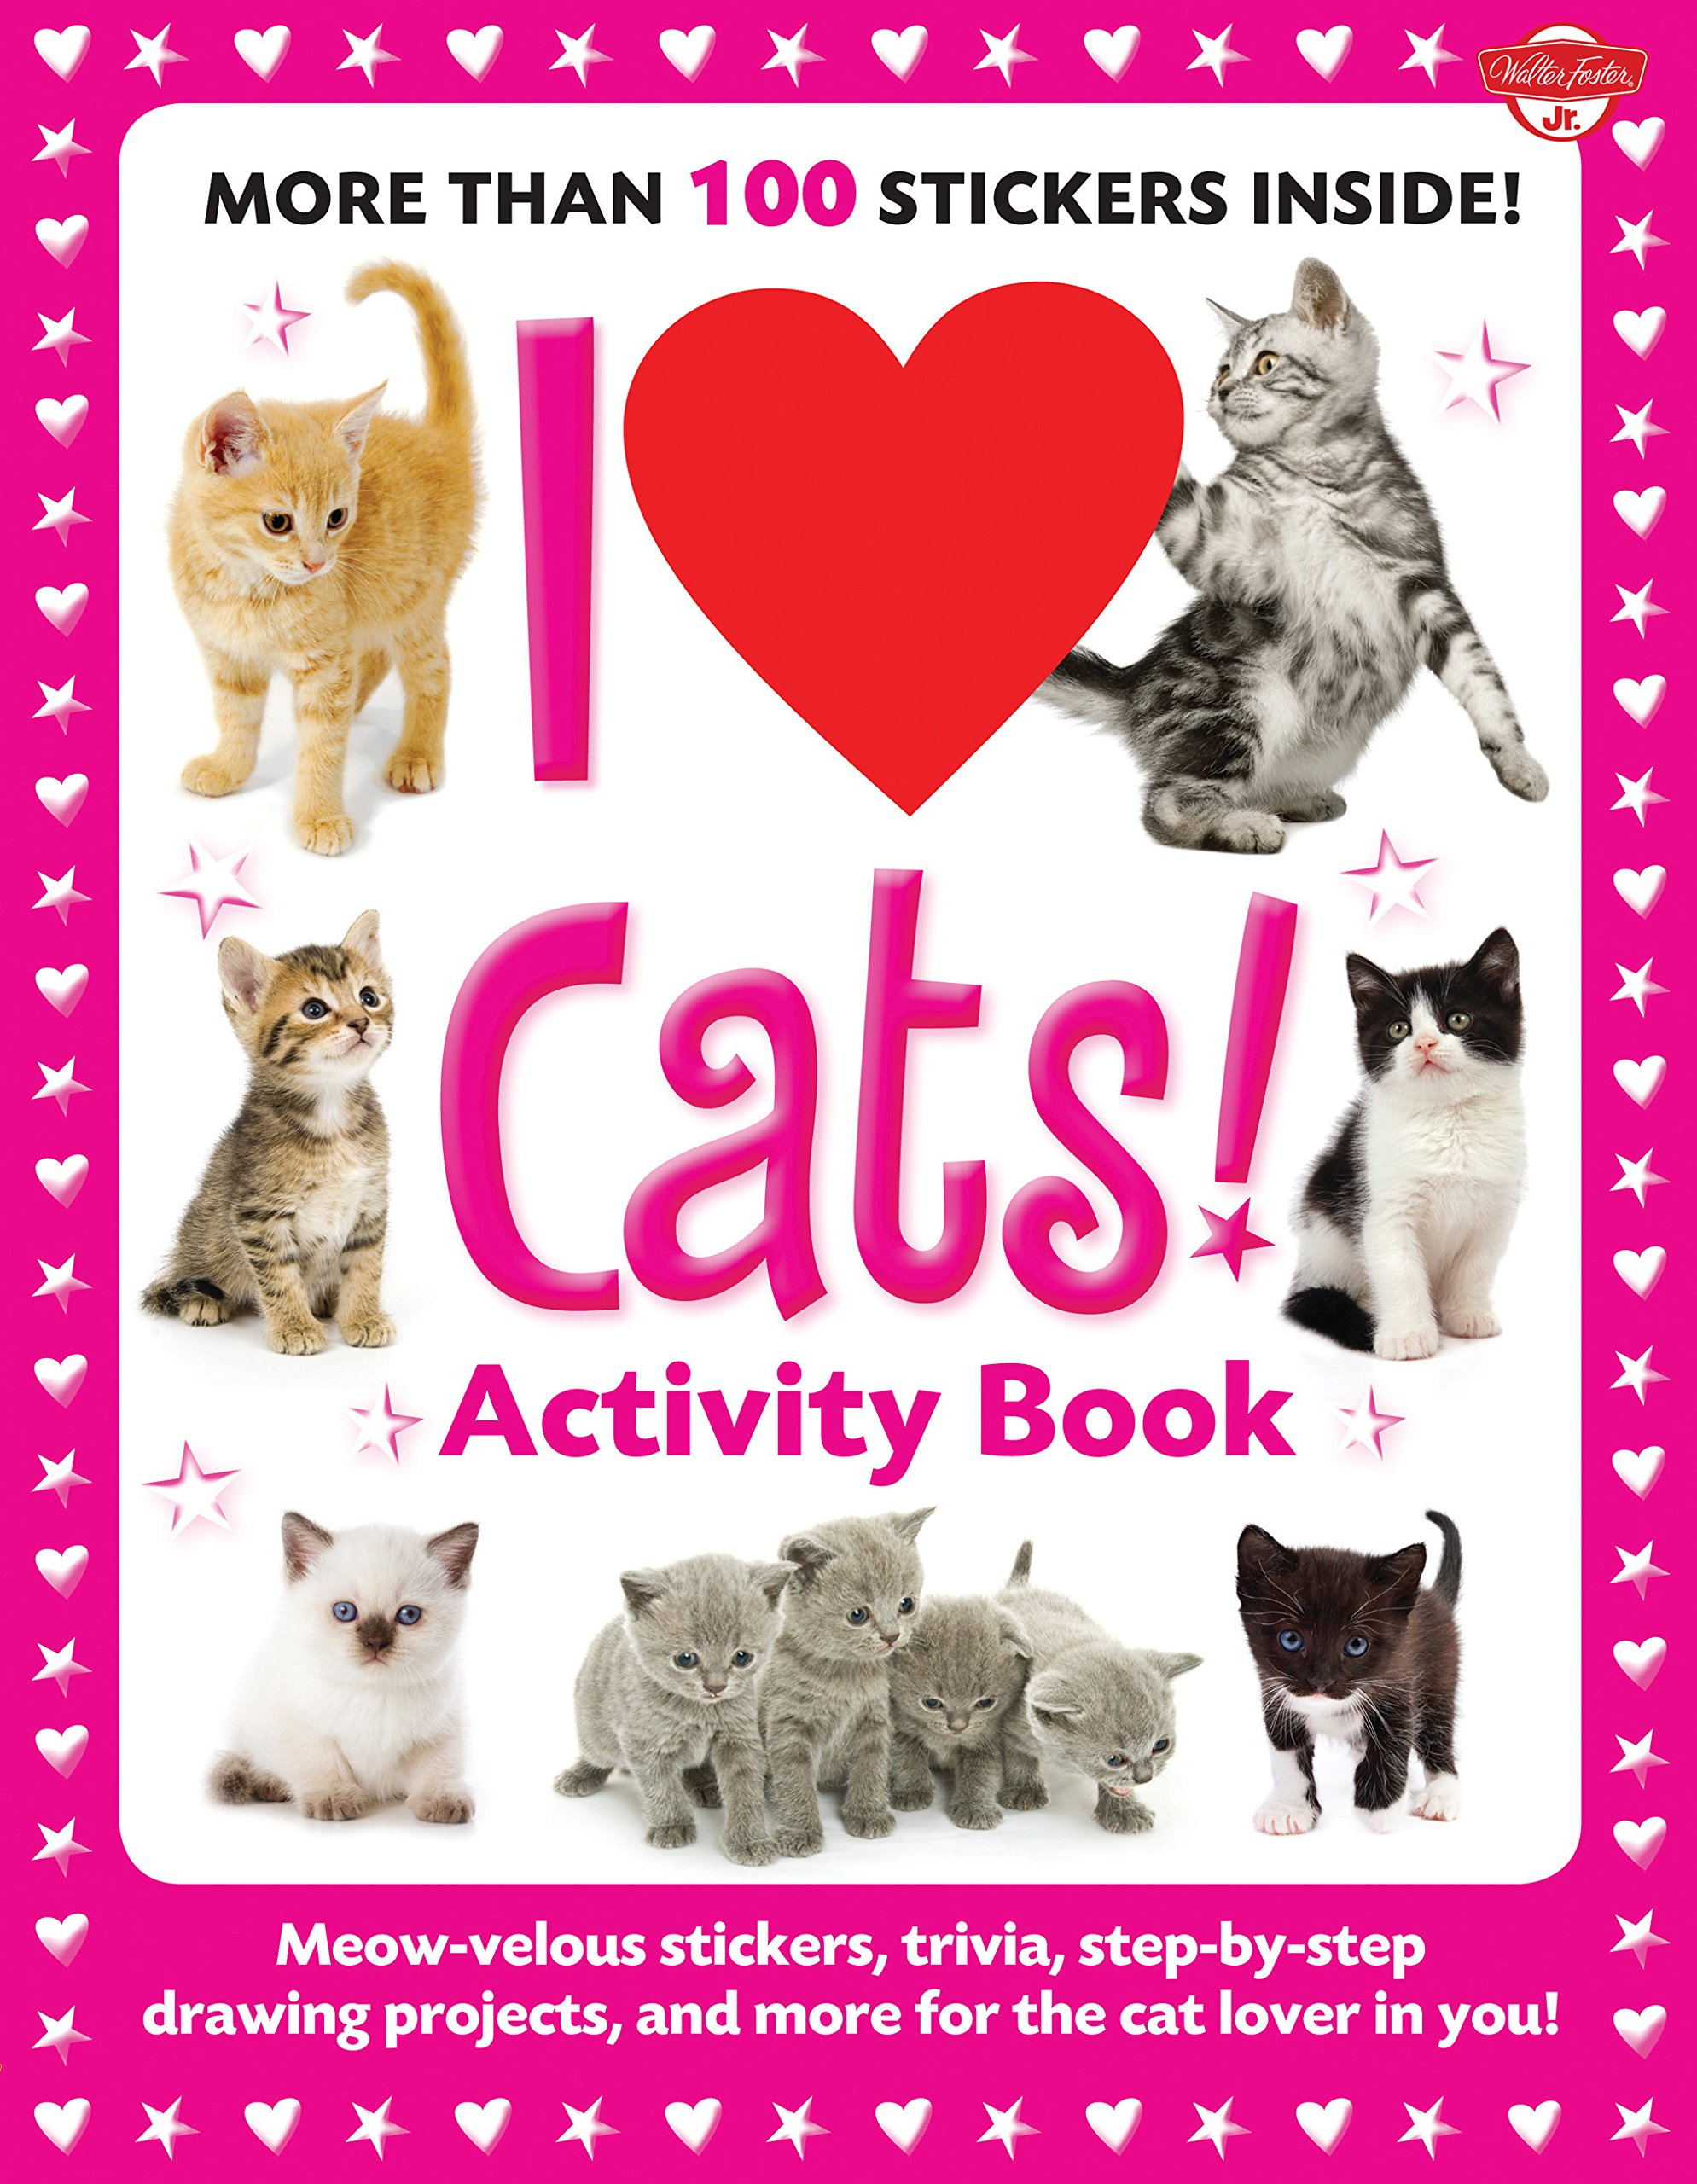 I Love Cats! Activity Book: Meow-velous stickers trivia step-by-step drawing projects and more for the cat lover in you! (I Love Activity Books)